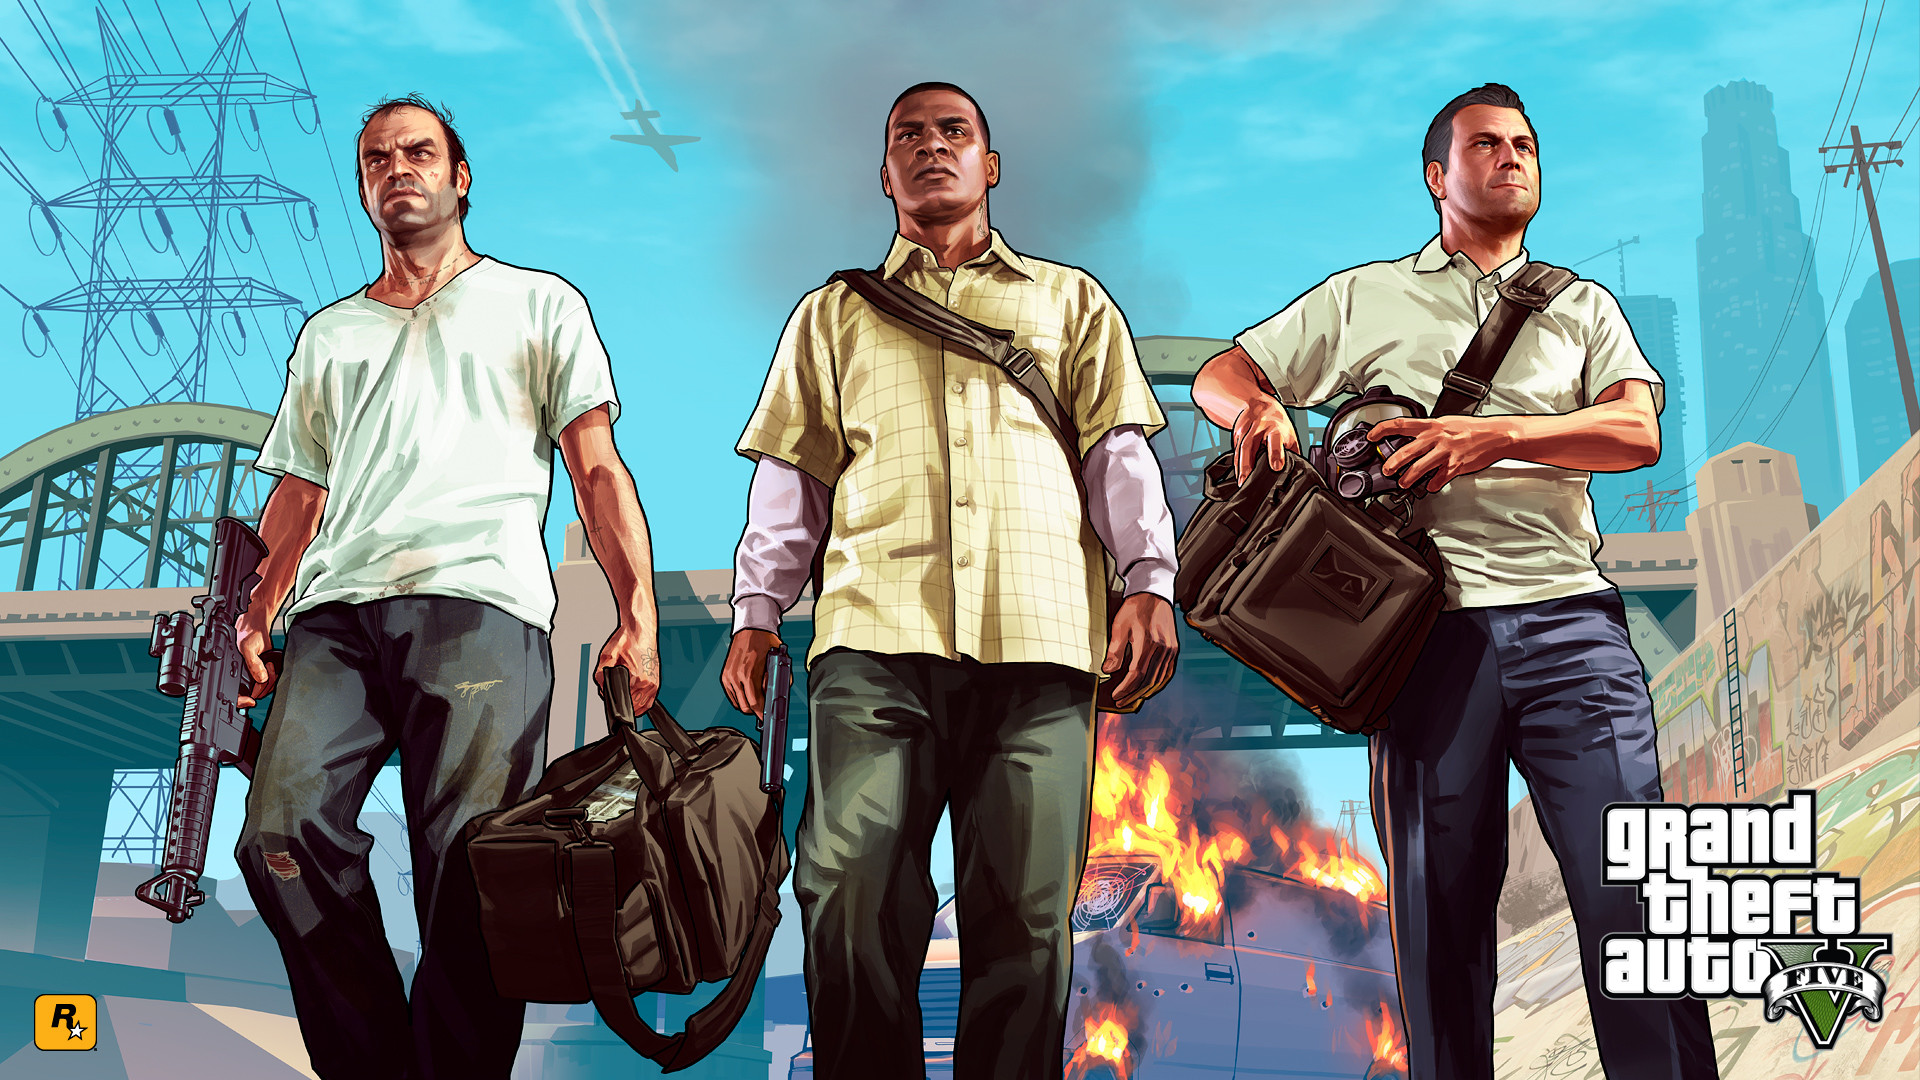 gta v wallpaper 1080p hd (79+ images)